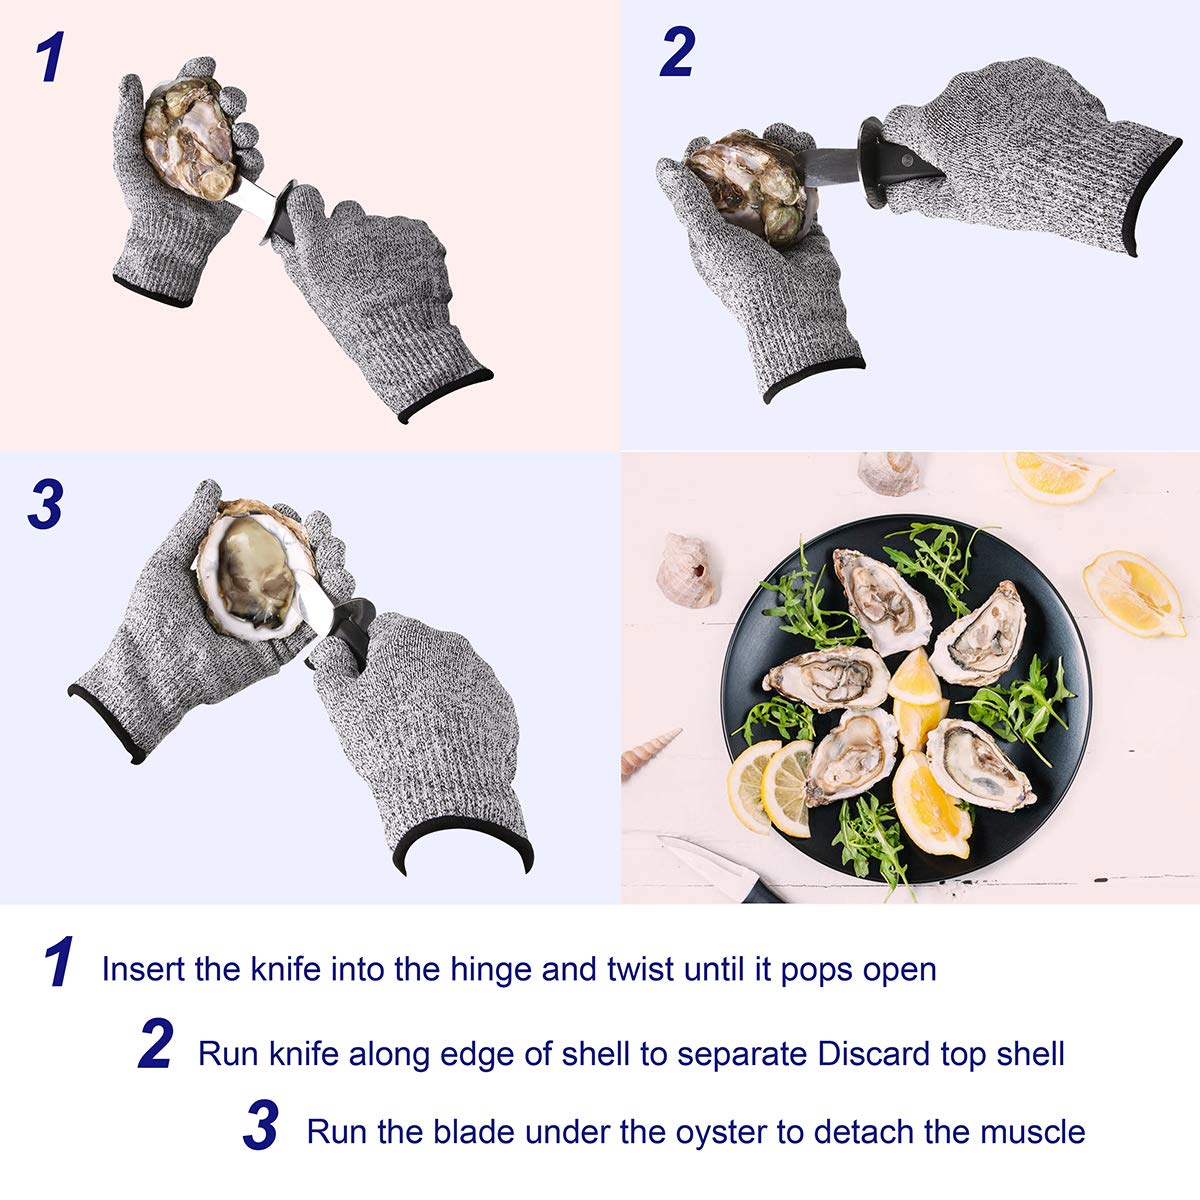 Oyster Shucking Knife Stainless Steel With High Performance Protection Food Grade Cut Resistant Gloves, Easy To Shucking Oysters (2pcs / set) by TechLeo (Image #2)